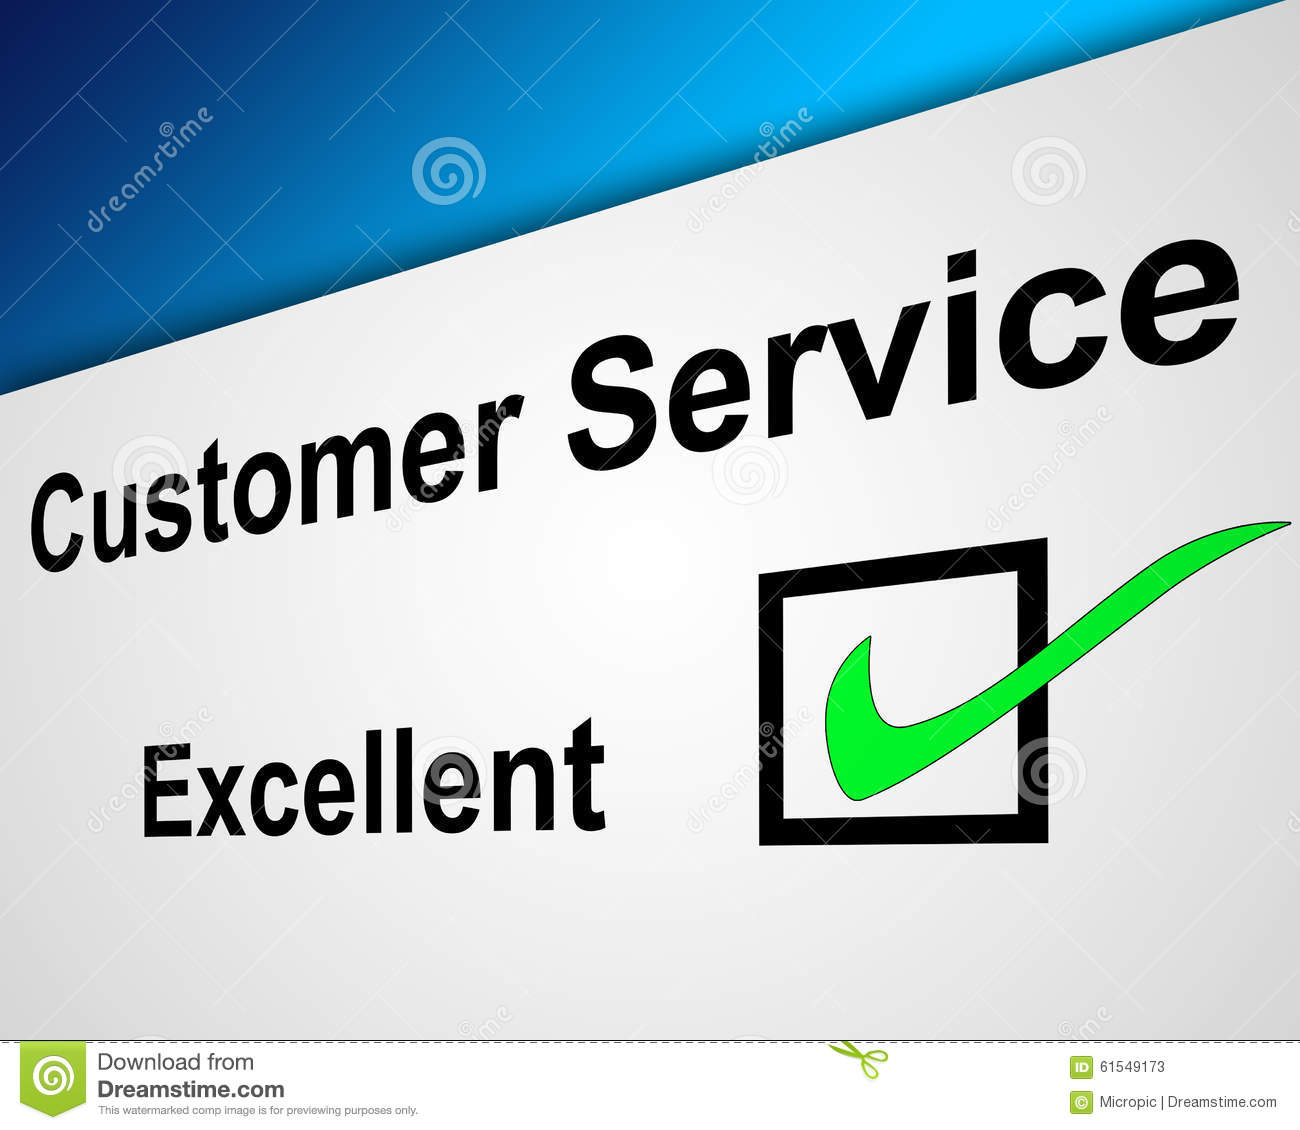 No Credit Check Credit Cards >> Excellent Customer Service Stock Illustration - Image: 61549173